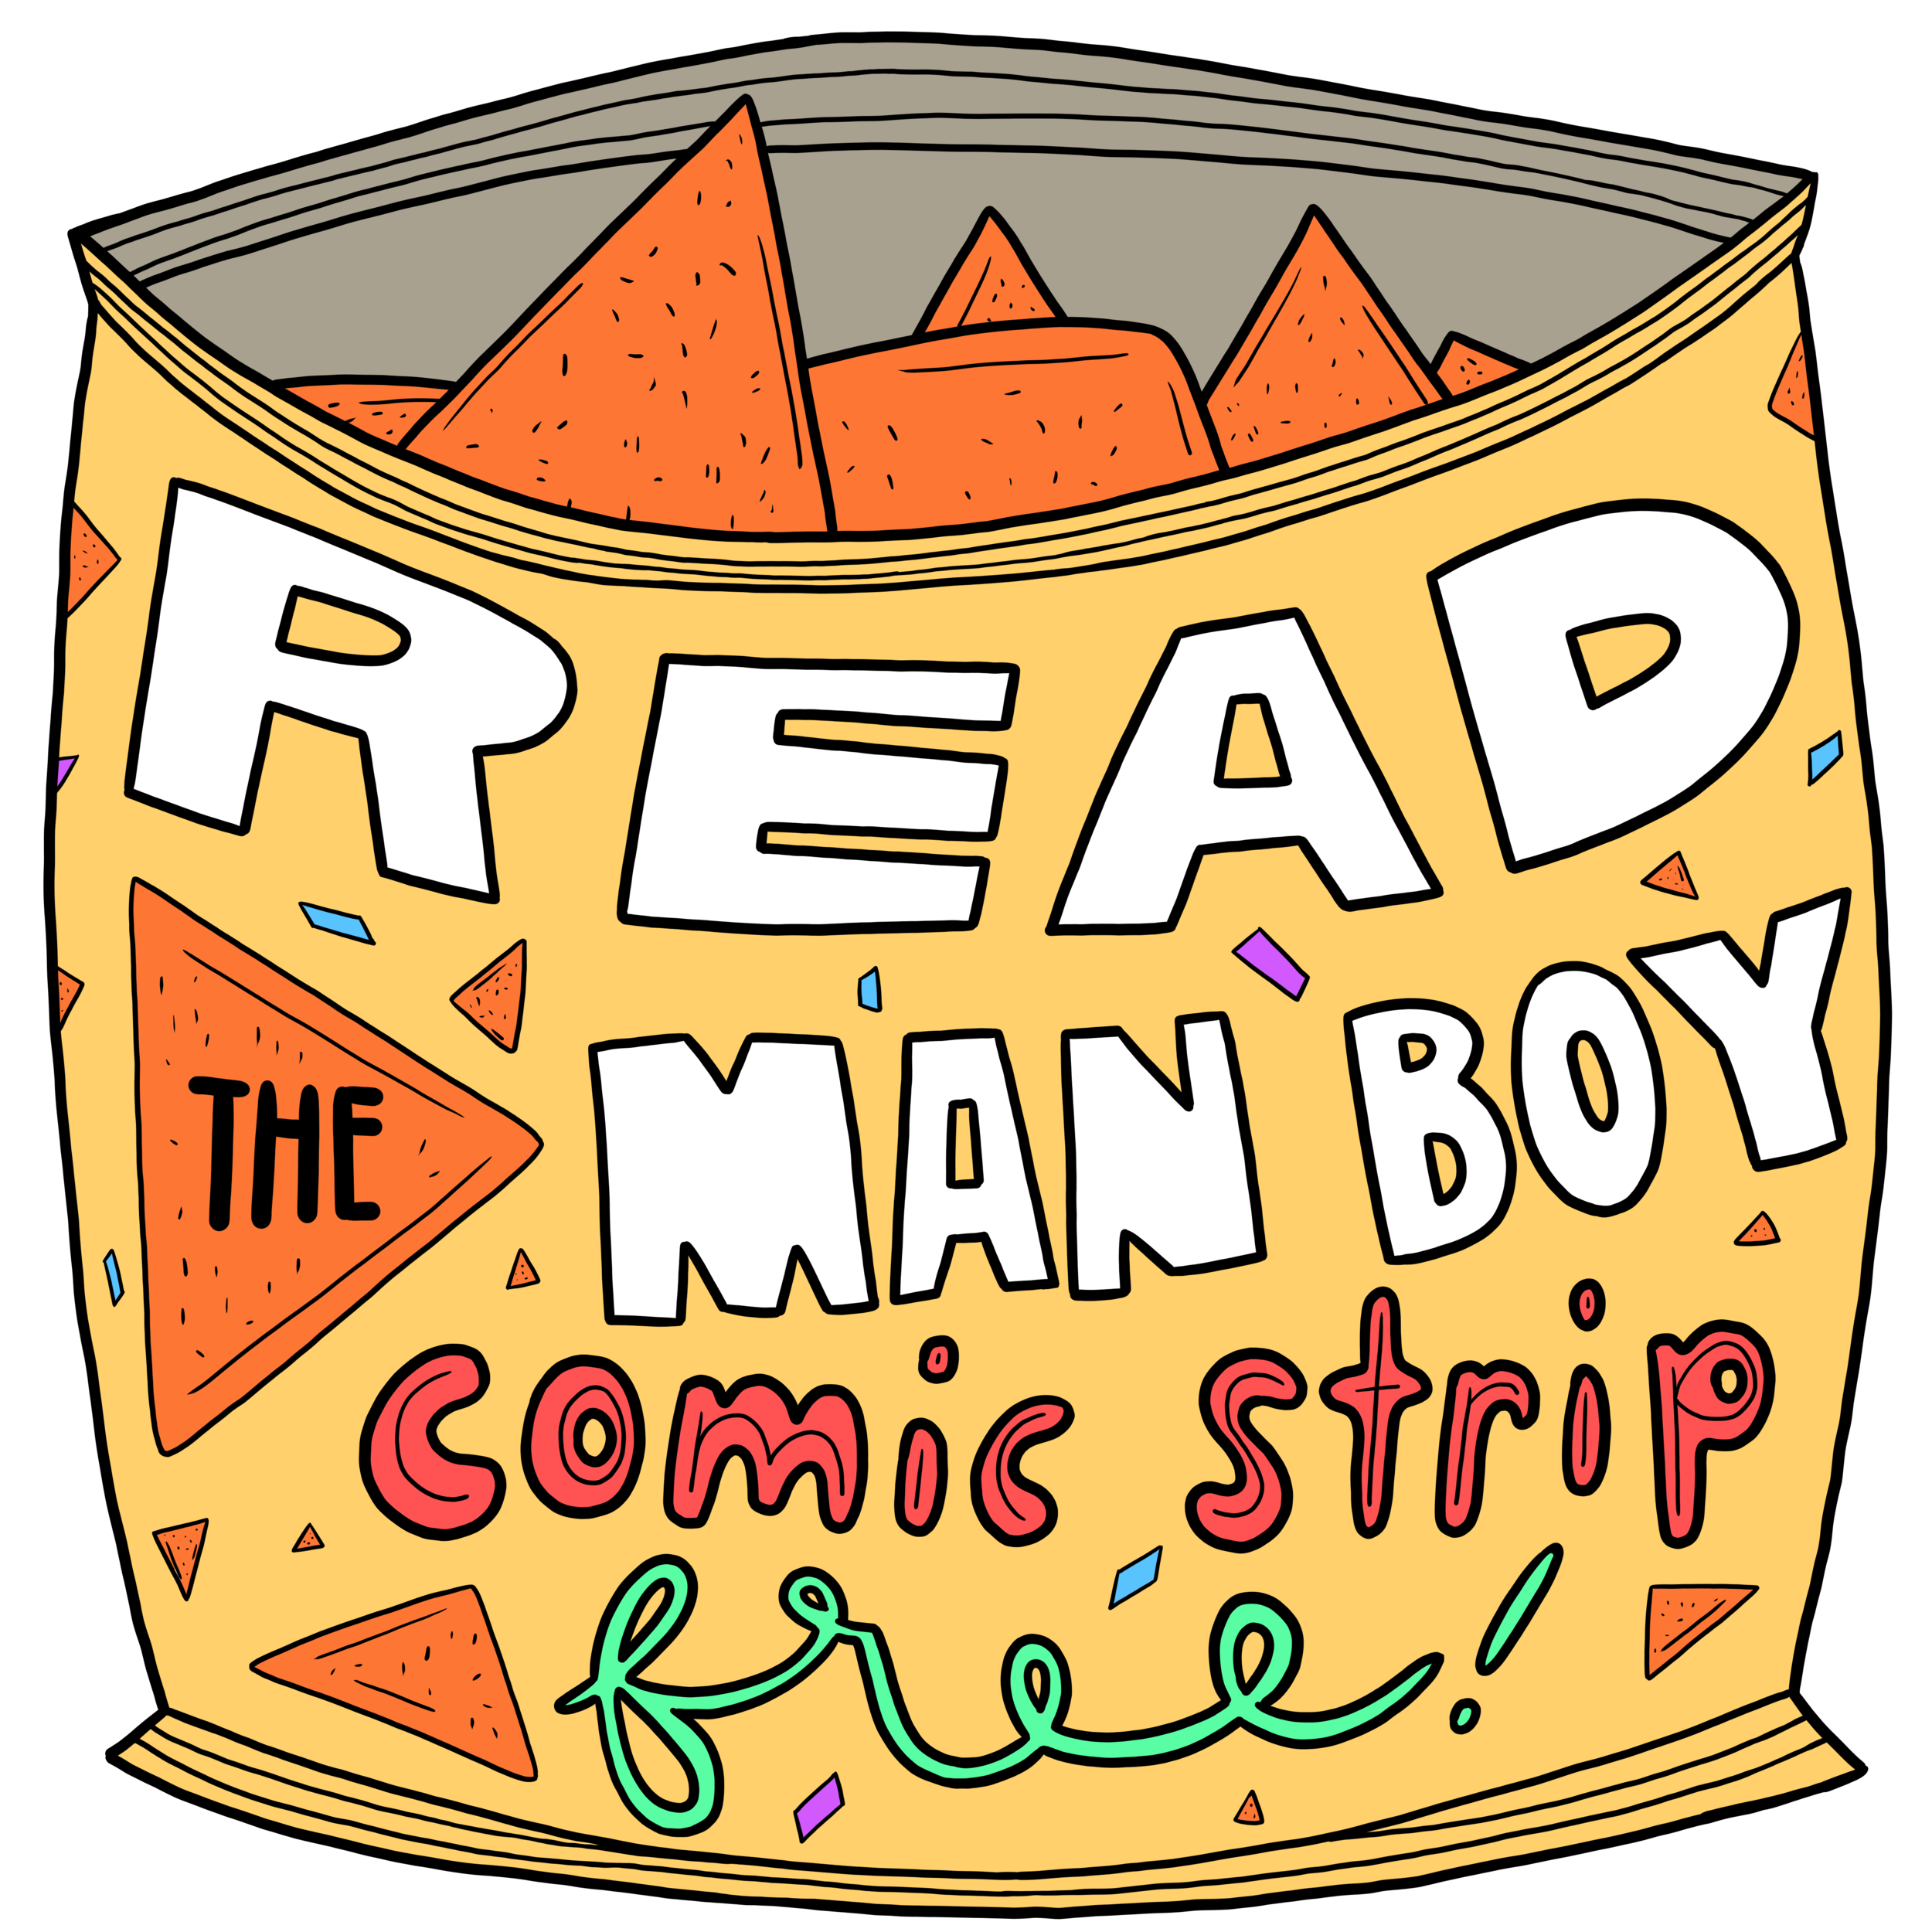 Read the Man Boy comic strips for free!